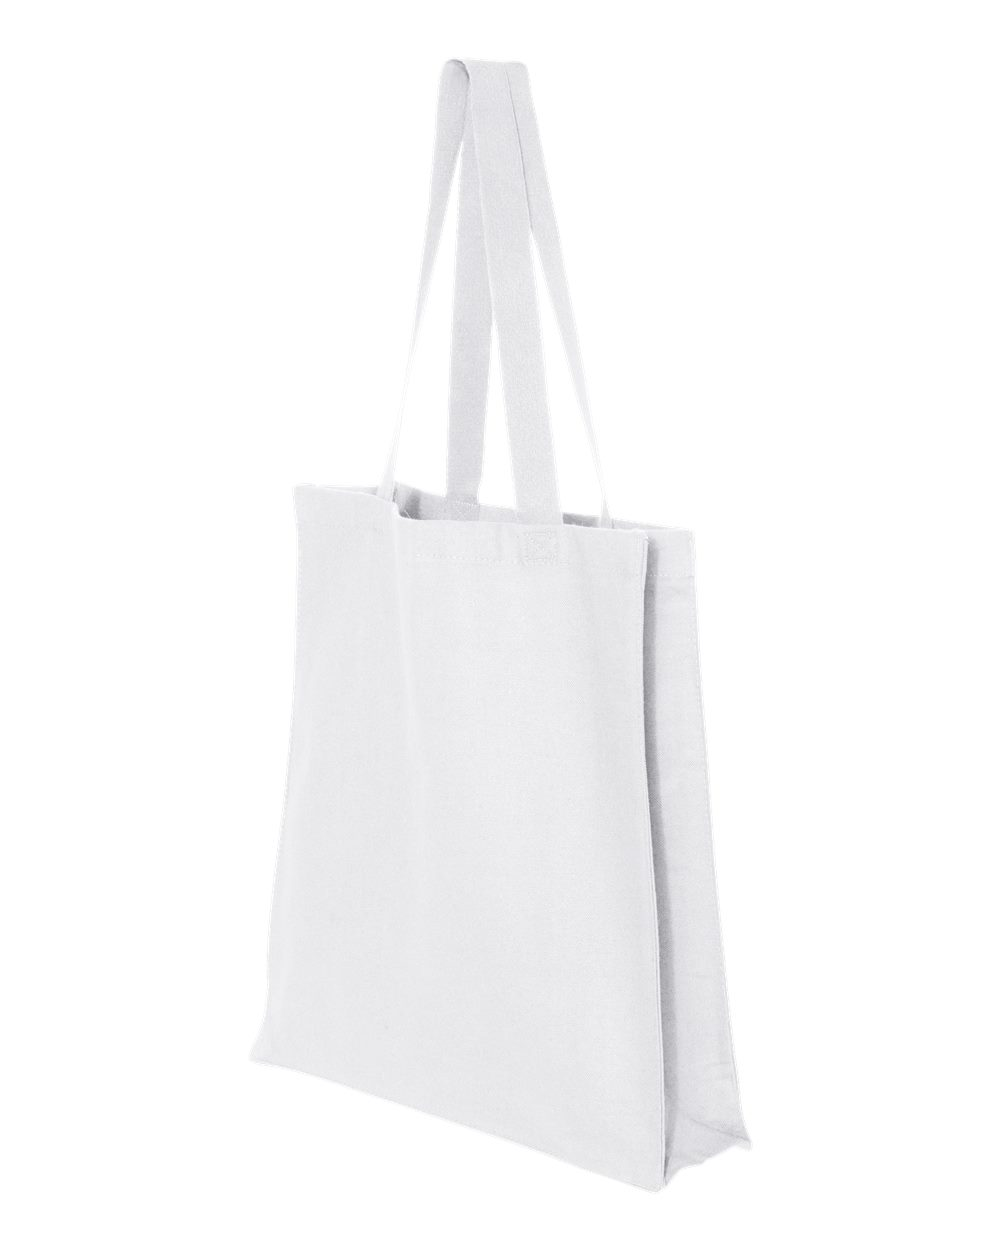 Q-Tees Q125300 - 13.7L Gusseted Canvas Shopper